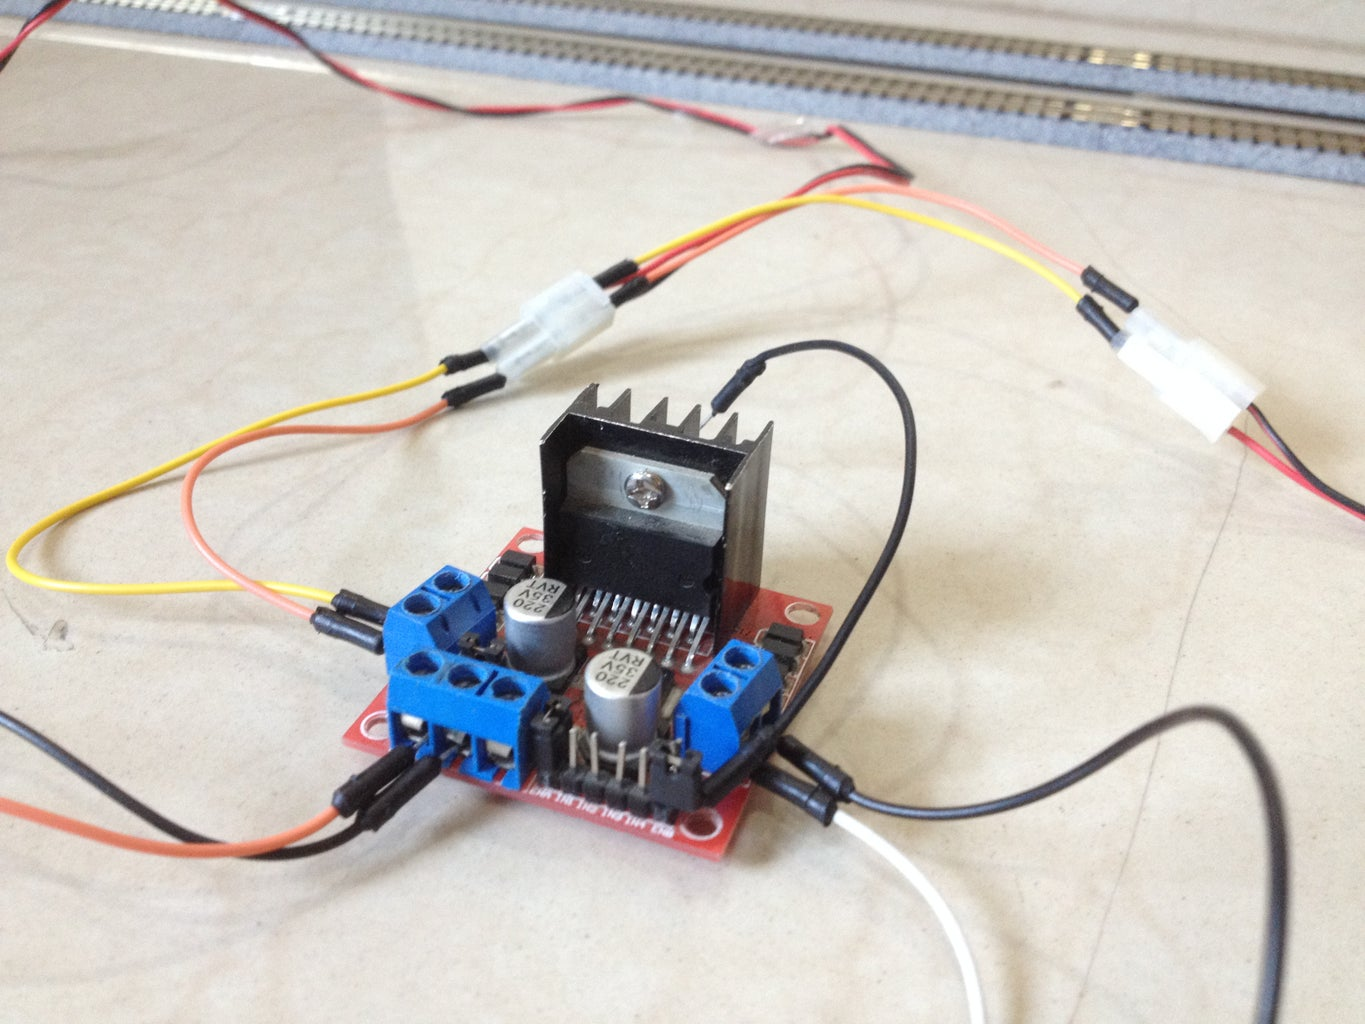 Connect the Turnouts to the Motor Driver